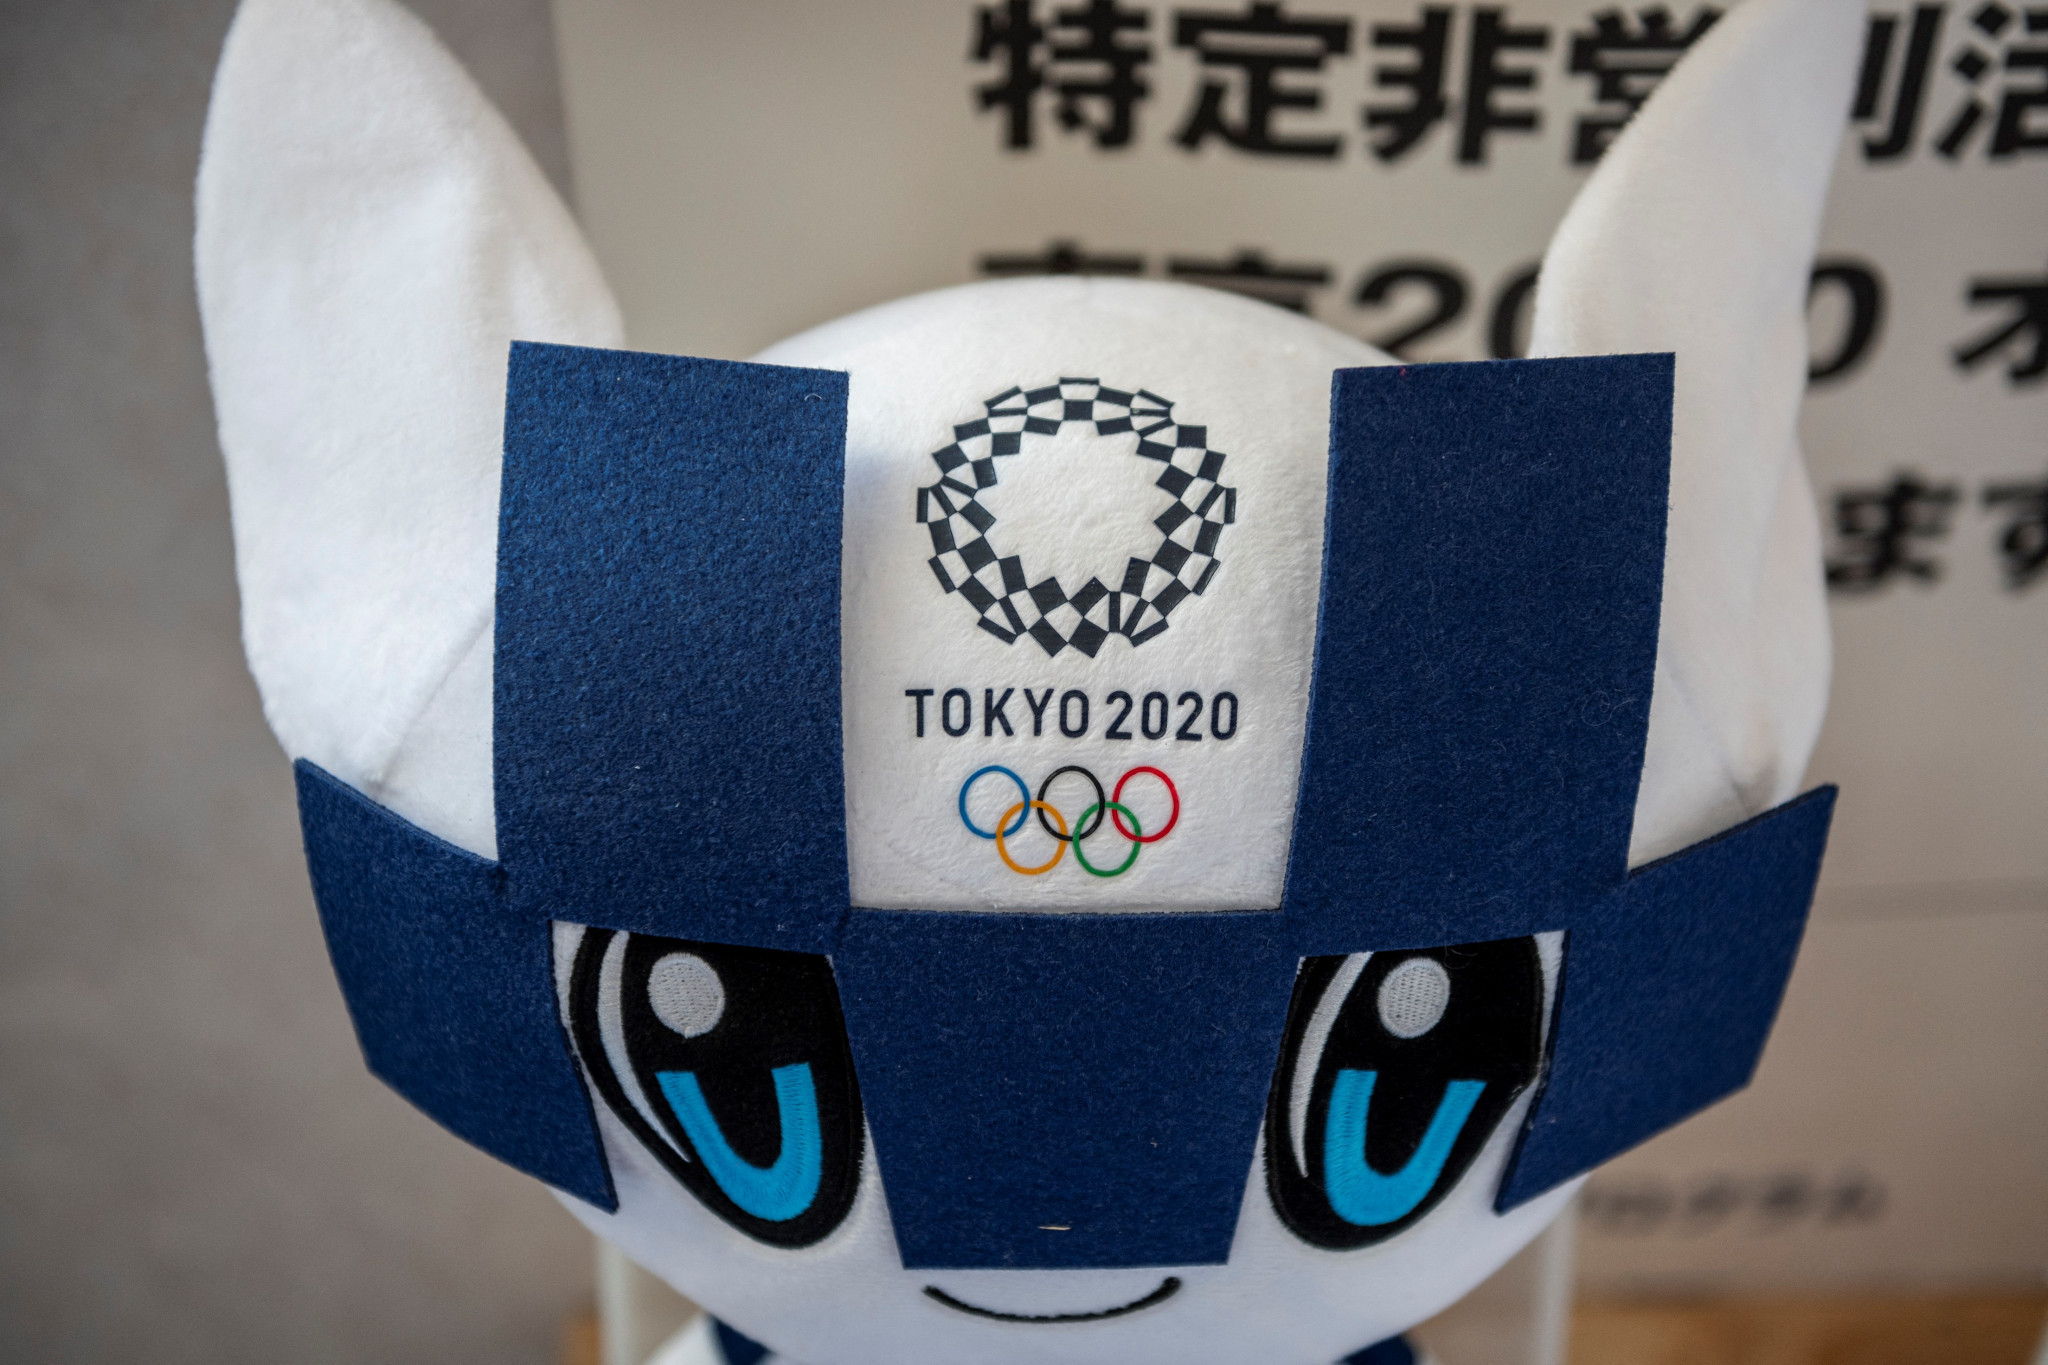 American ATR says customers will not be refunded 20 per cent handling fee on Tokyo 2020 tickets